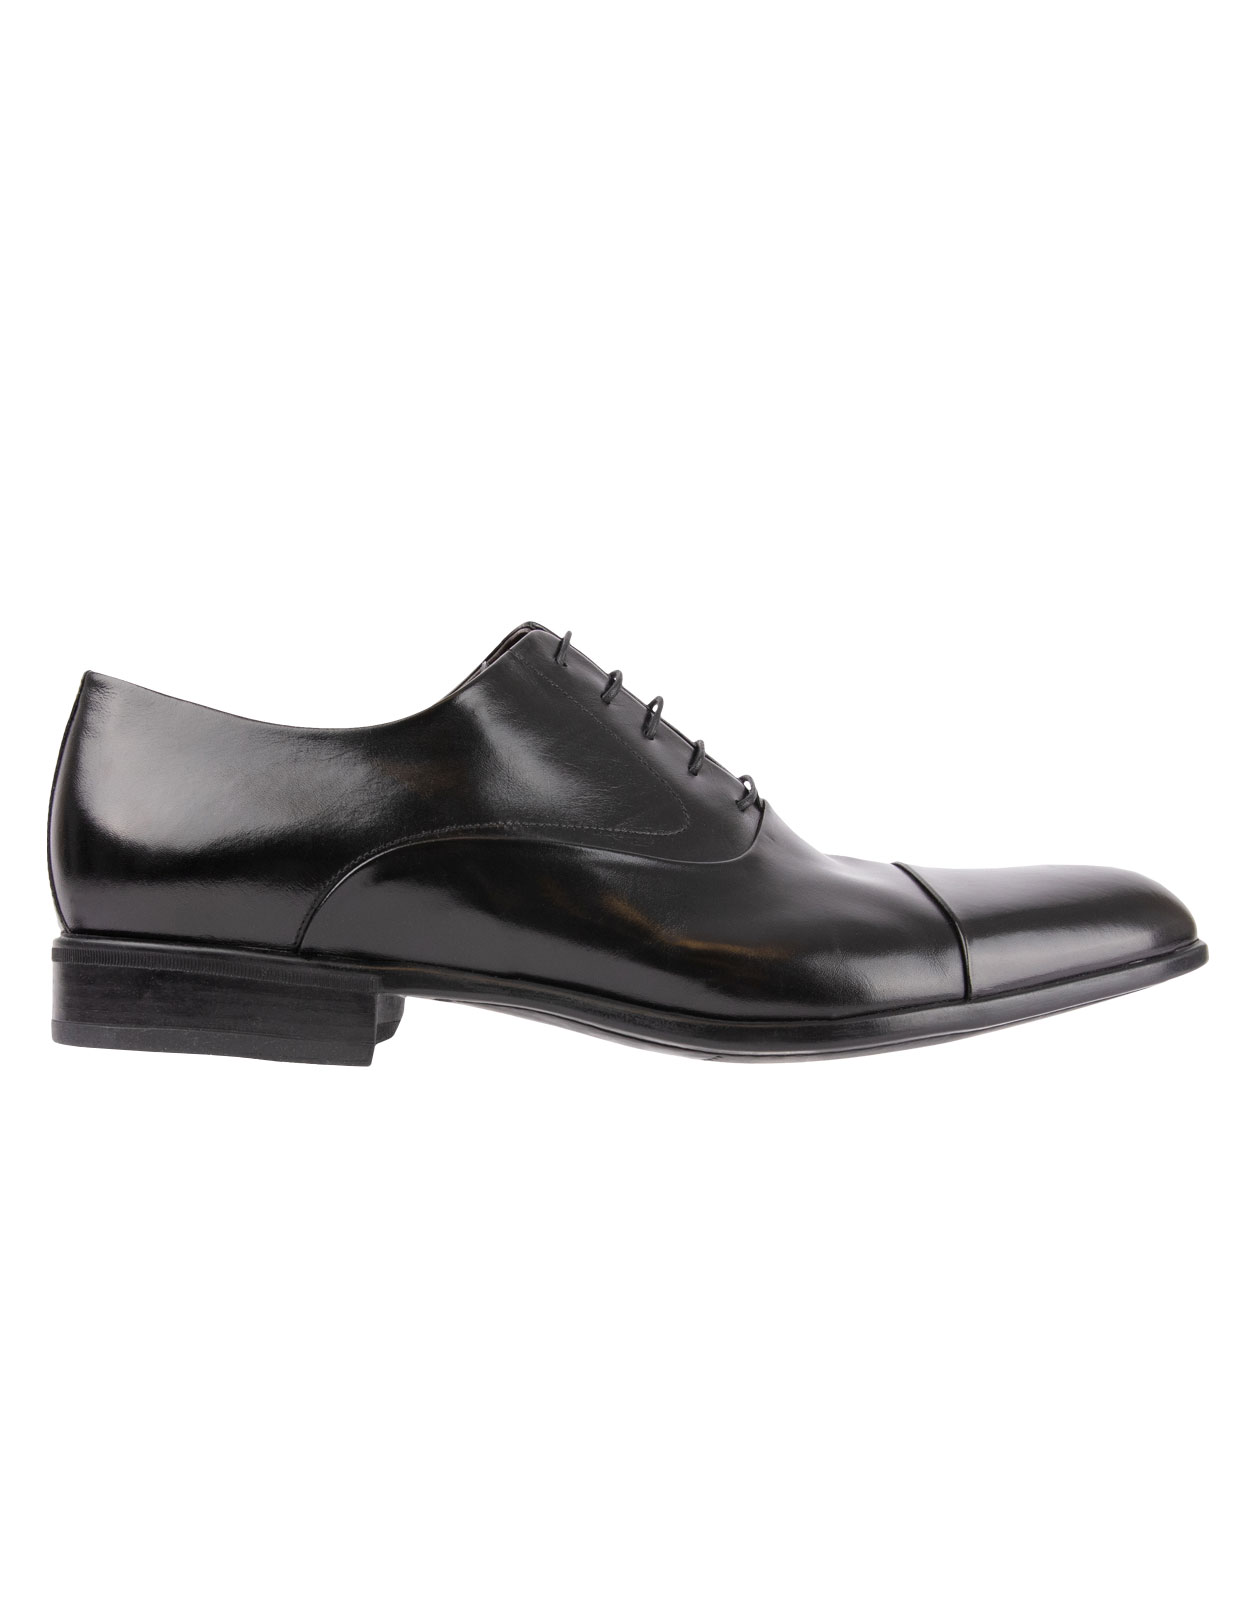 Dublin Oxford Shoe Calfskin With  Rubber Sole Black Stl 9